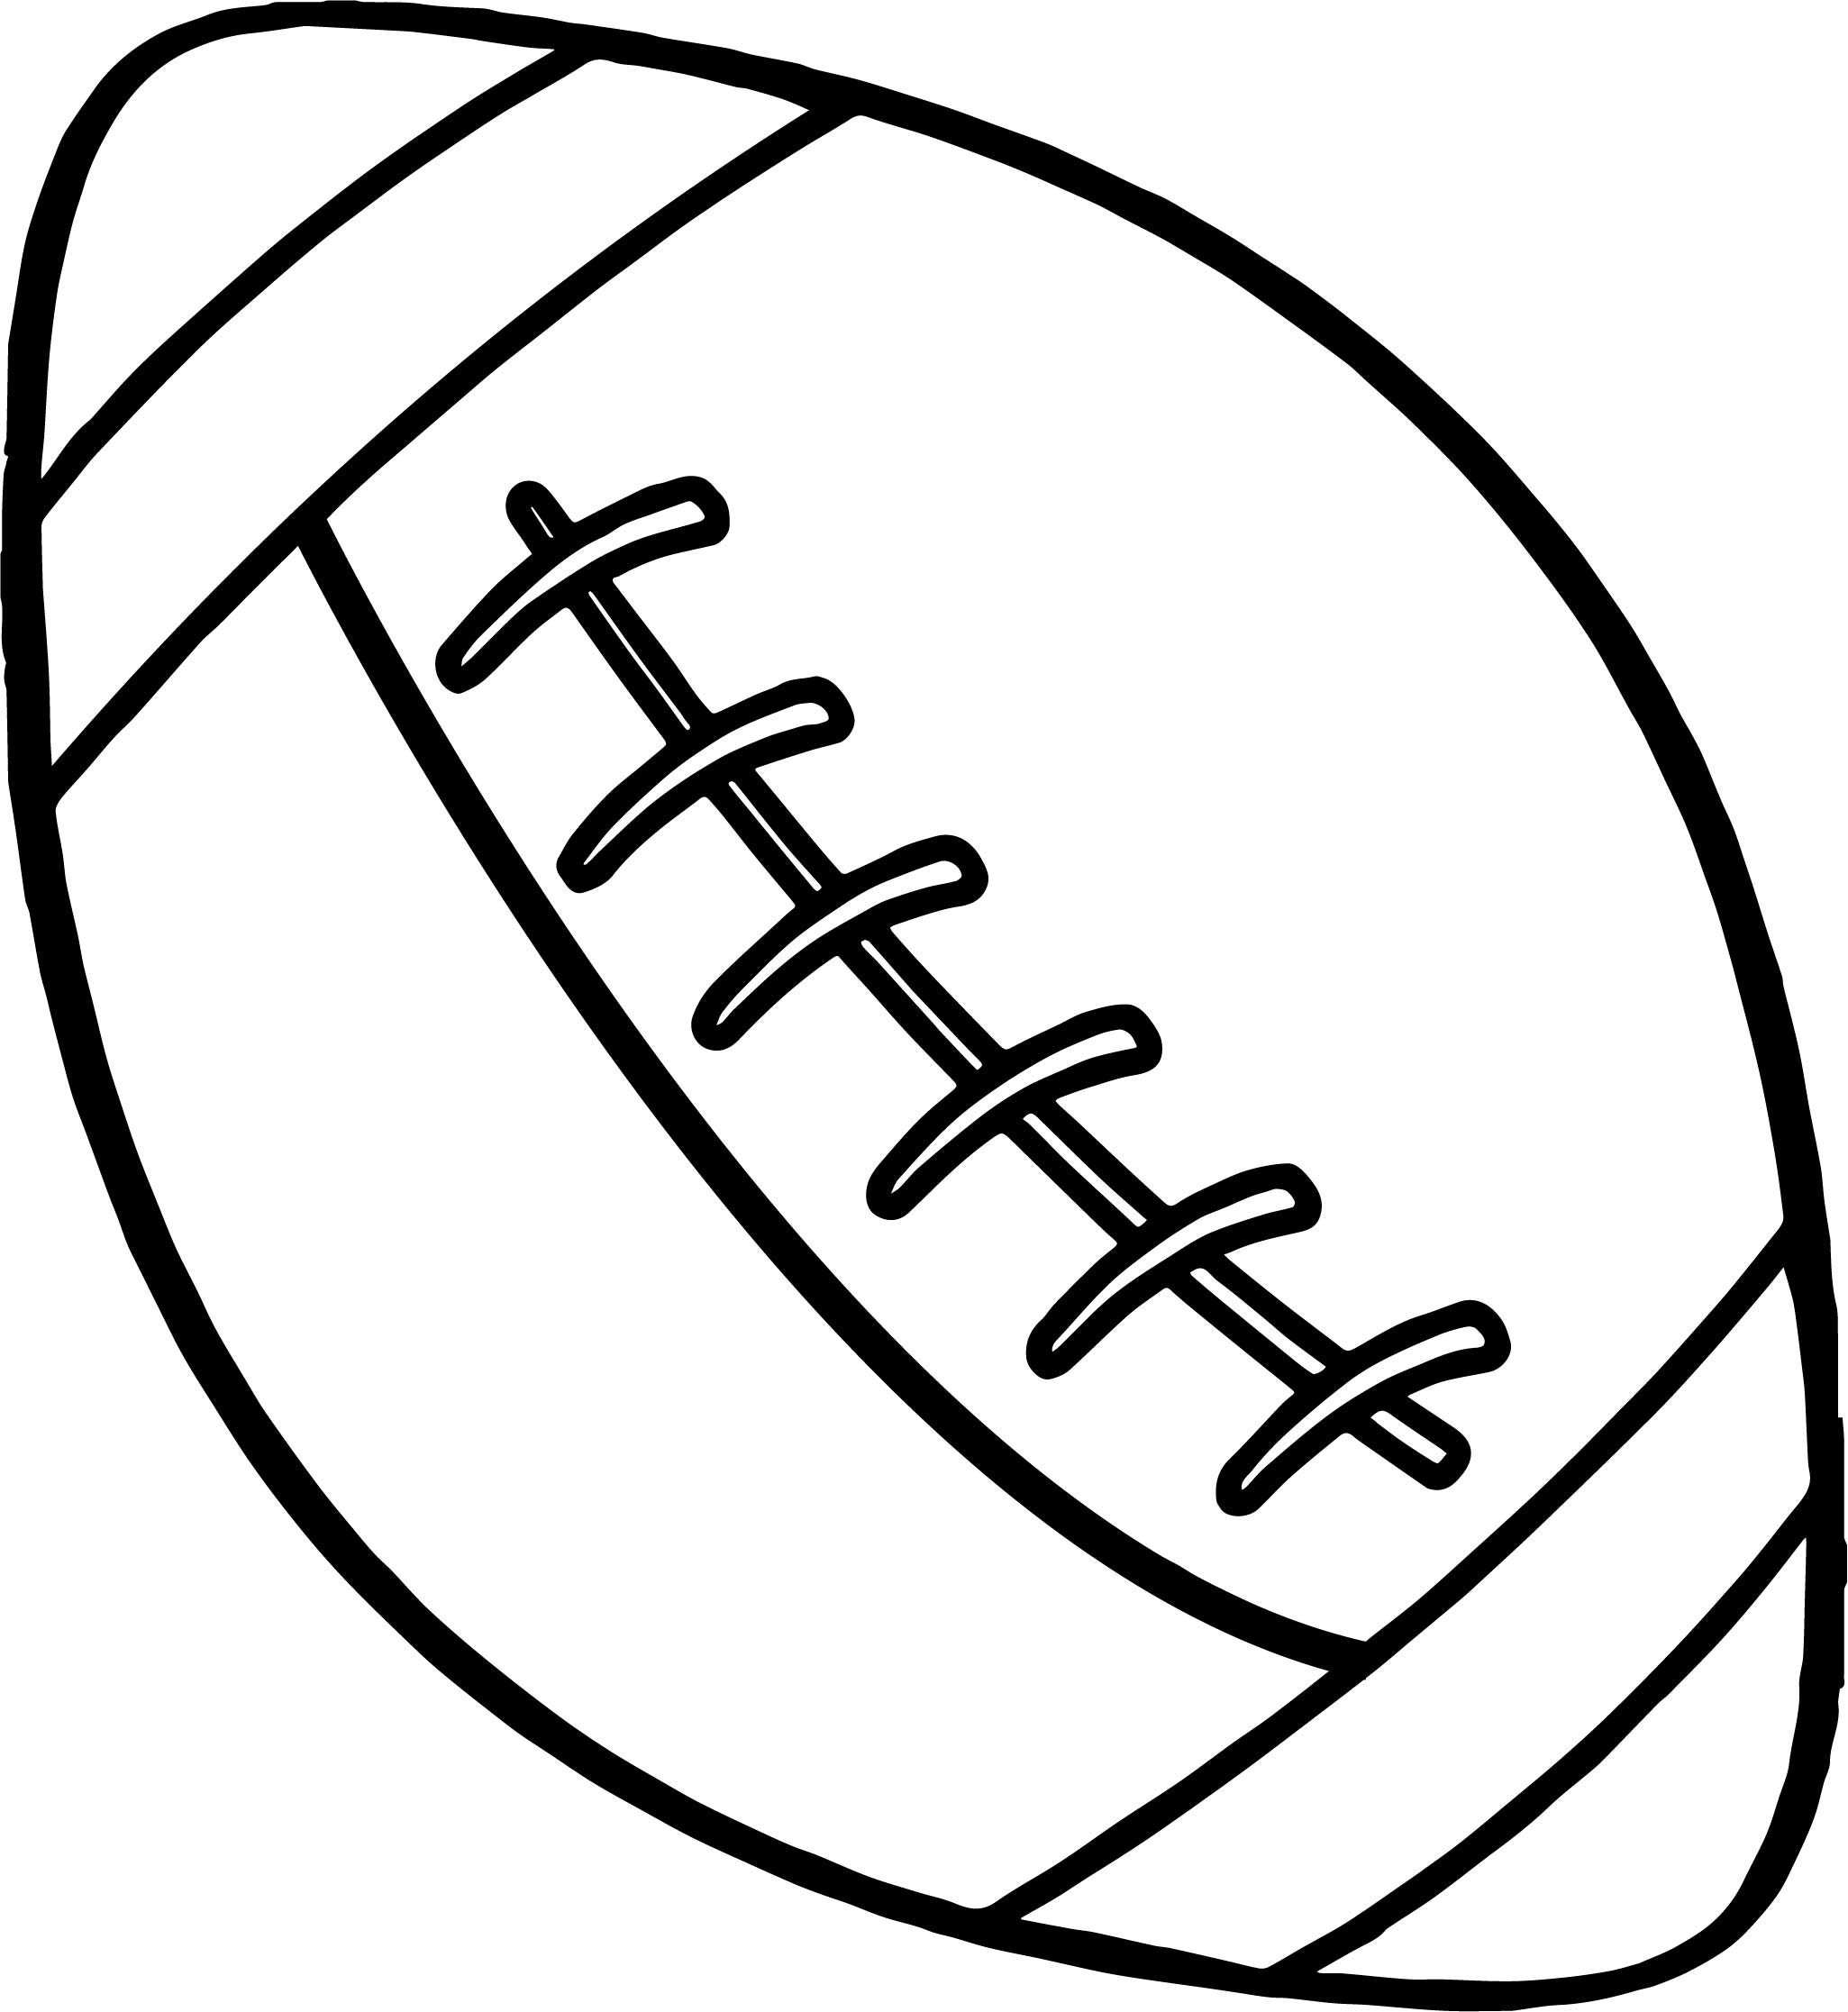 American Game Ball Playing Football Coloring Page